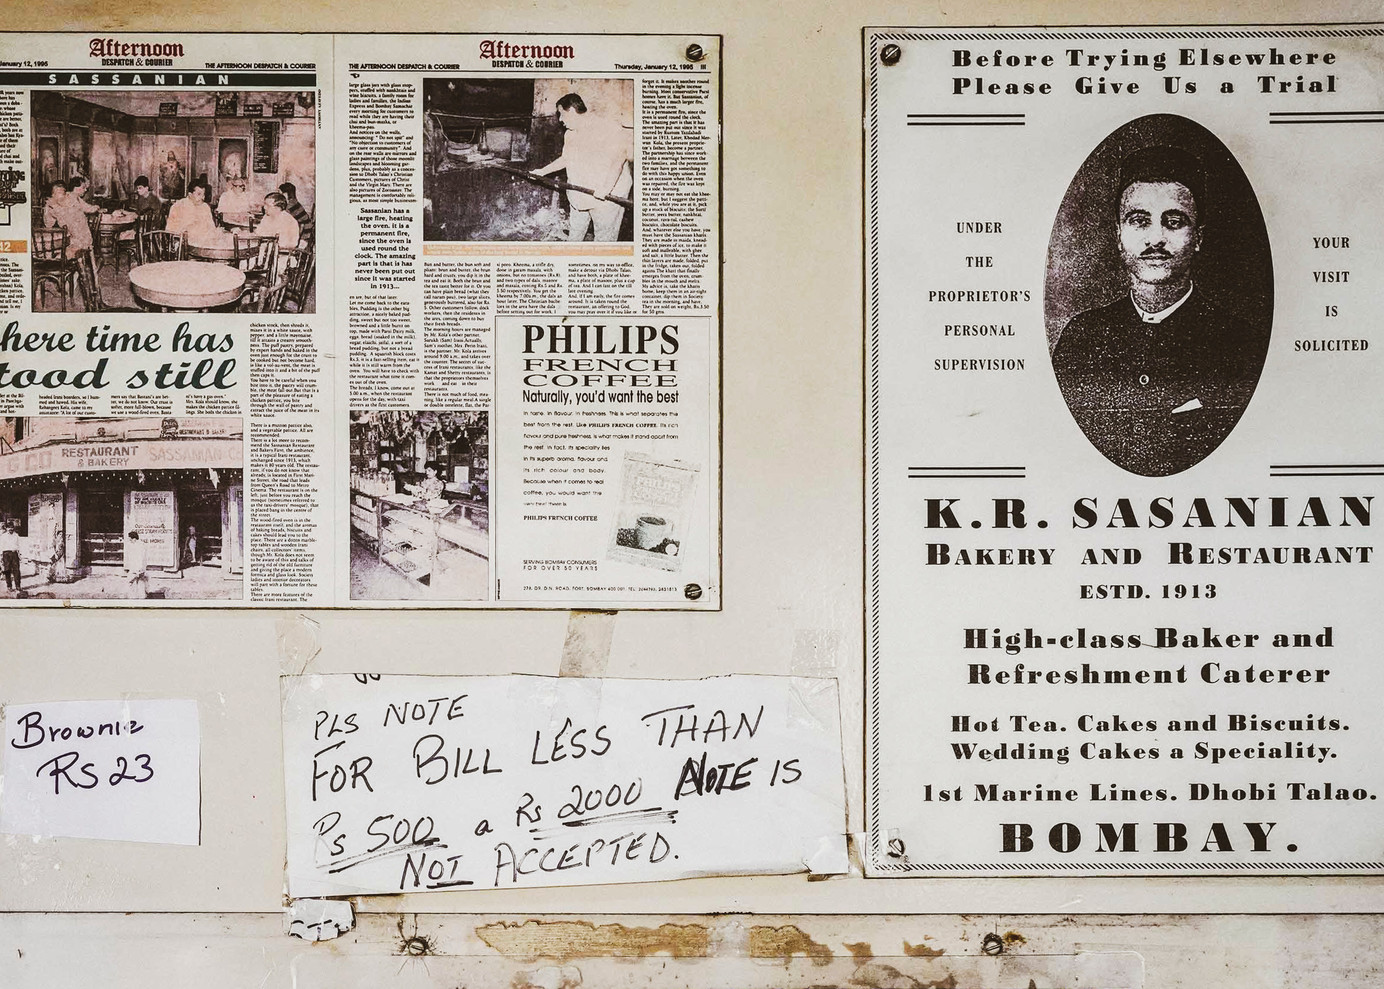 The advertisement leaflet on the right was distributed when Sassanian Boulangerie was established in 1913 as K.R. Sasanian. They served hot tea, cakes and biscuits. Wedding cakes were a speciality, popular with the European, Anglo-Indian, Parsi and Indian Christian communities living in South Bombay. The news clipping on the left, titled 'Where Time has Stood Still', reminiscence about the competition between Sassanian and Bastani, another legendary Irani restaurant at Dhobi Talao, famous for its chicken pattice. Unfortunately, Bastani has long since closed down.